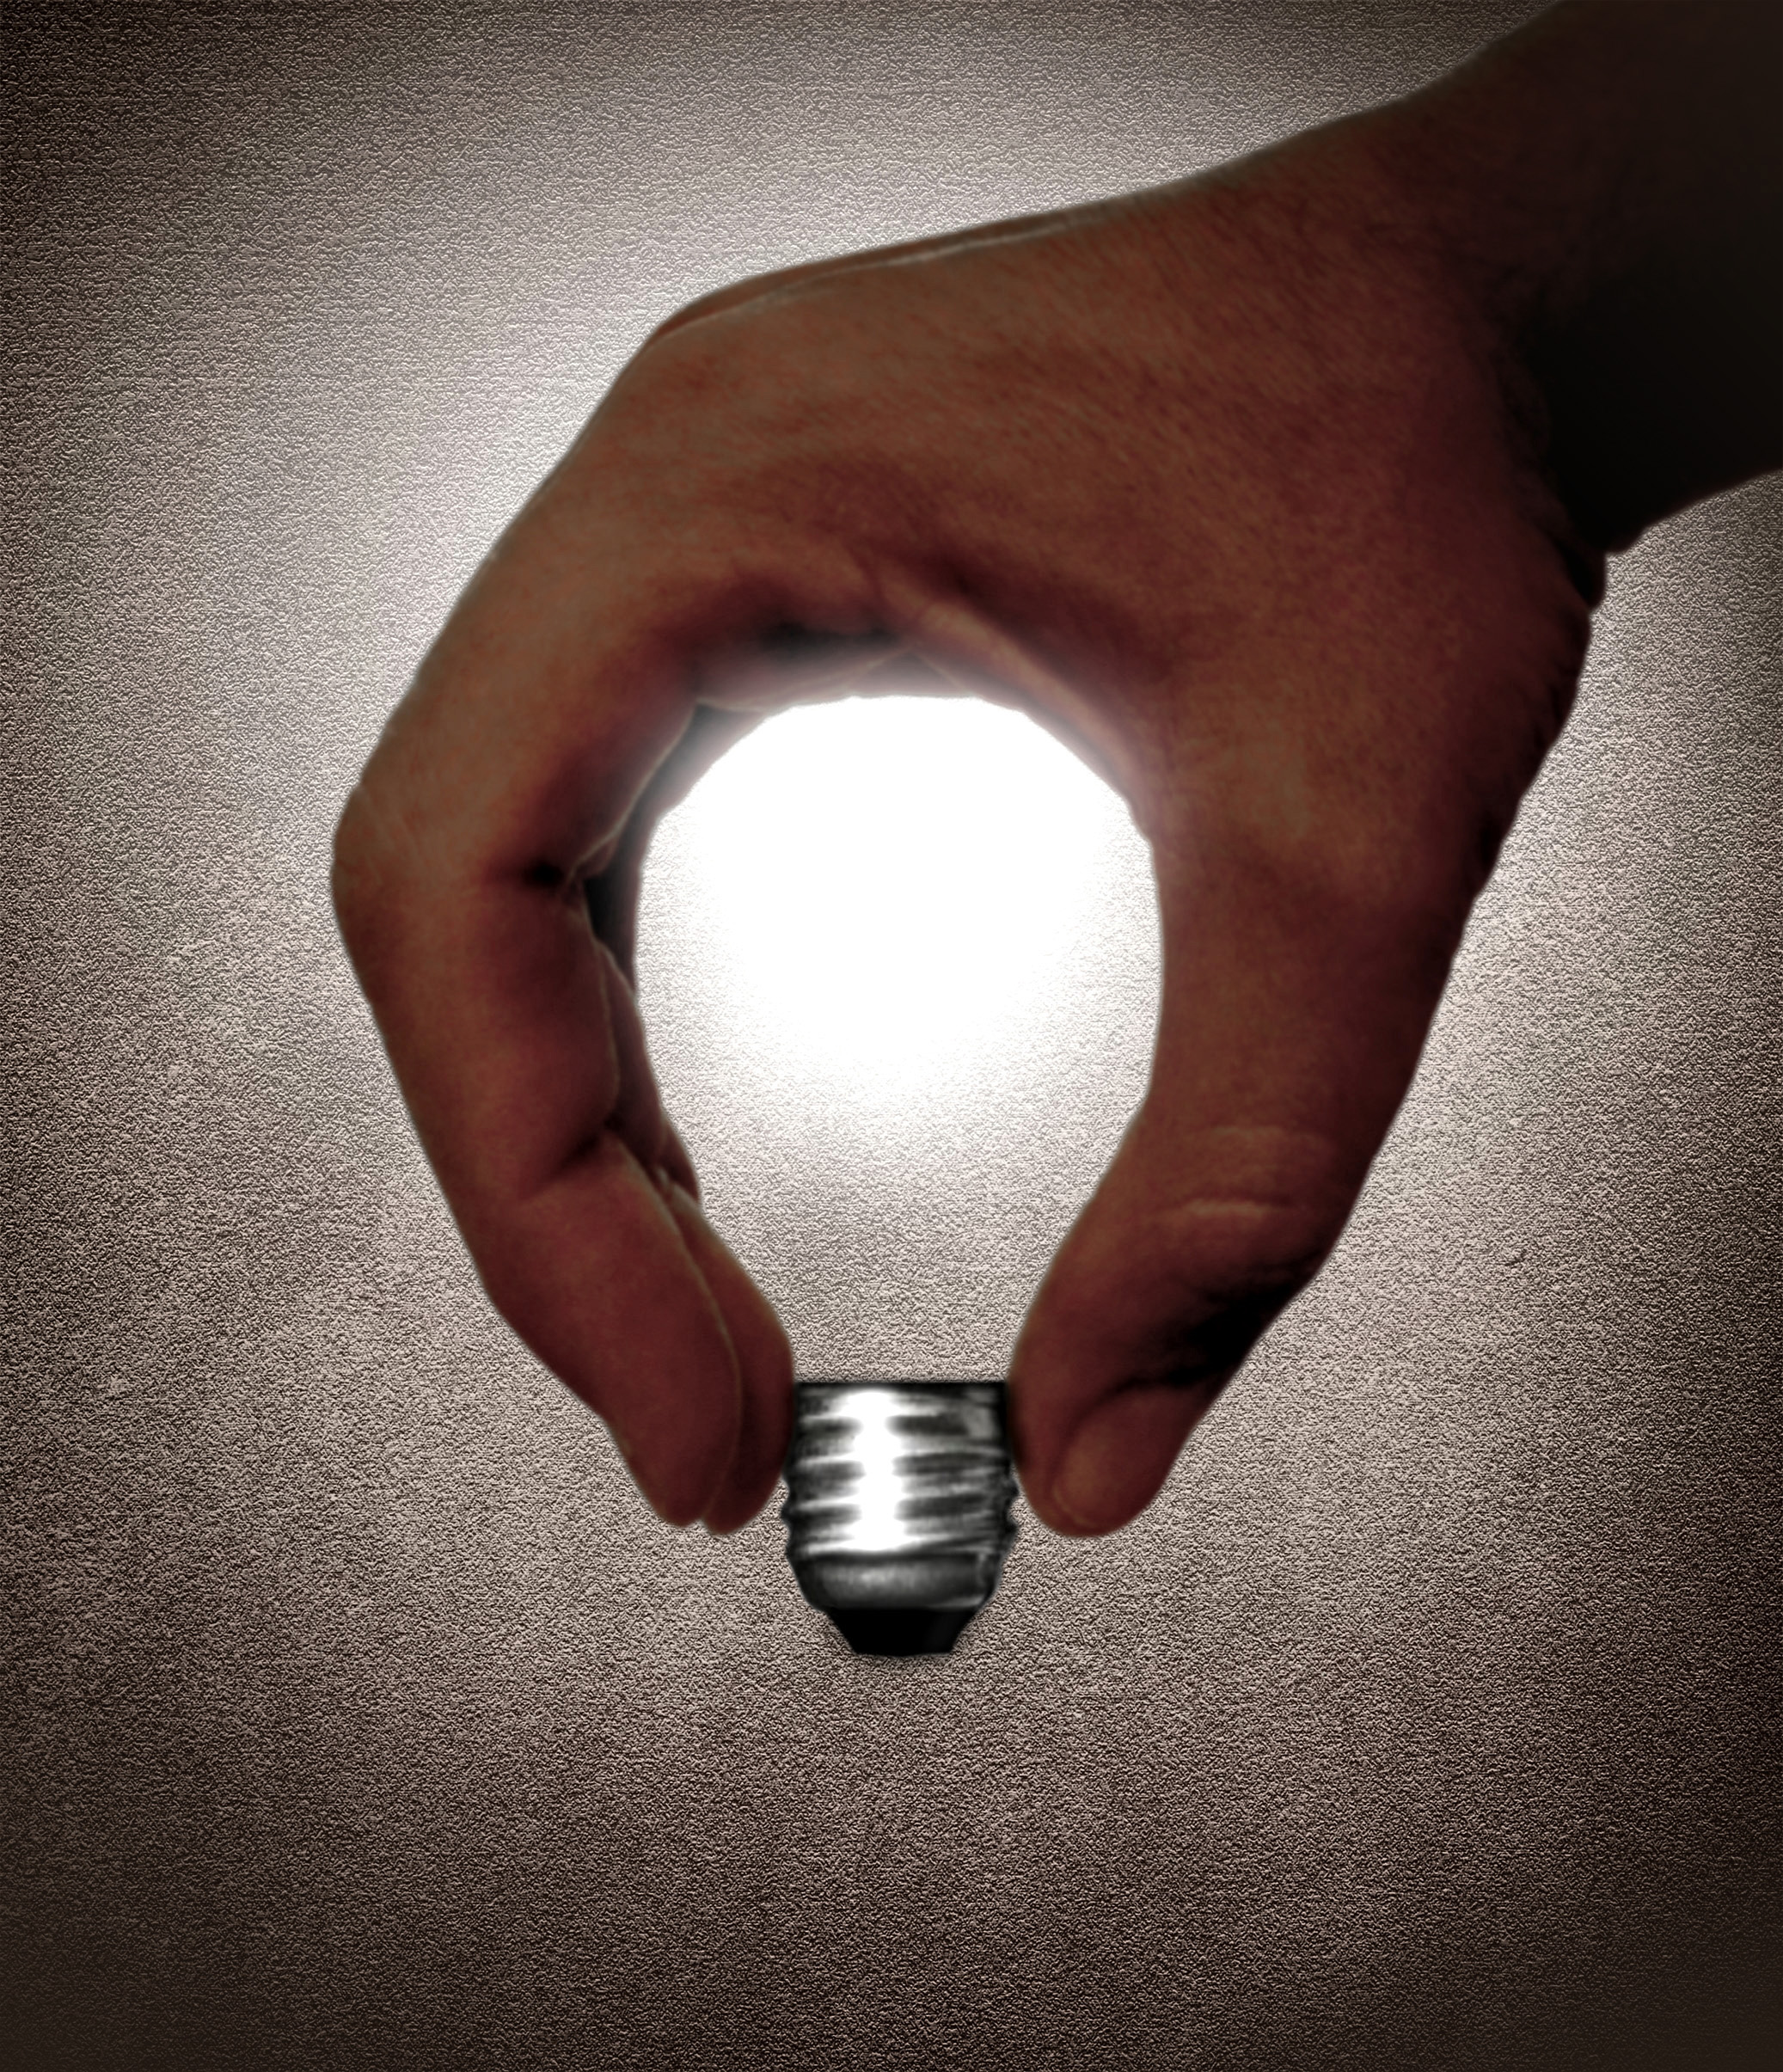 Hand and lightbulb - Creativity and idea, Abstract, Object, Power, Photons, HQ Photo